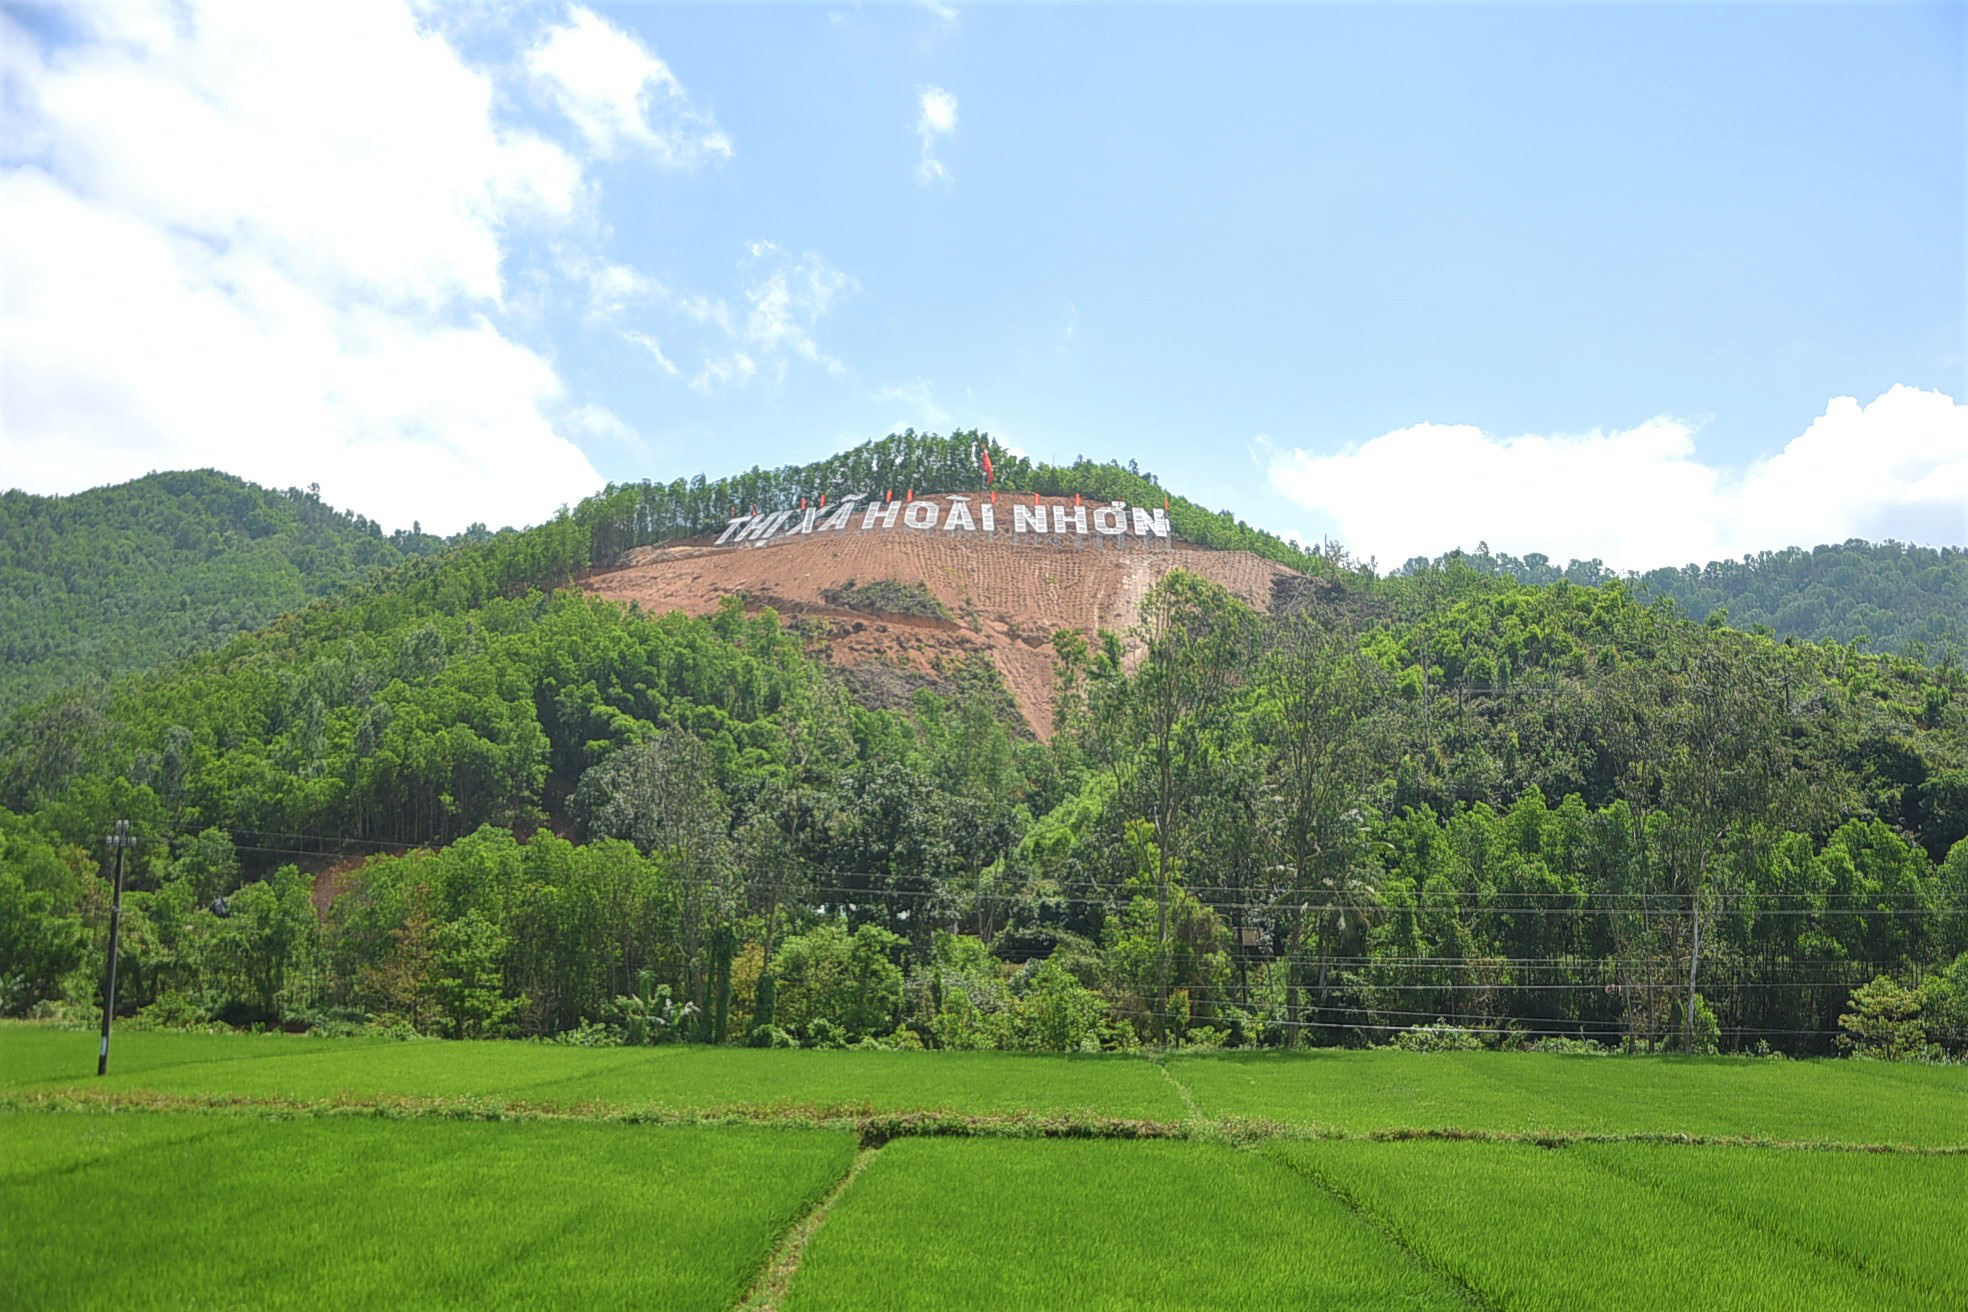 The sign advertising the name of Hoai Nhon Town is seen on a bare land lot standing out amidst other green parts of a local mountain in Binh Dinh Province, Vietnam. Photo: Lam Thien / Tuoi Tre